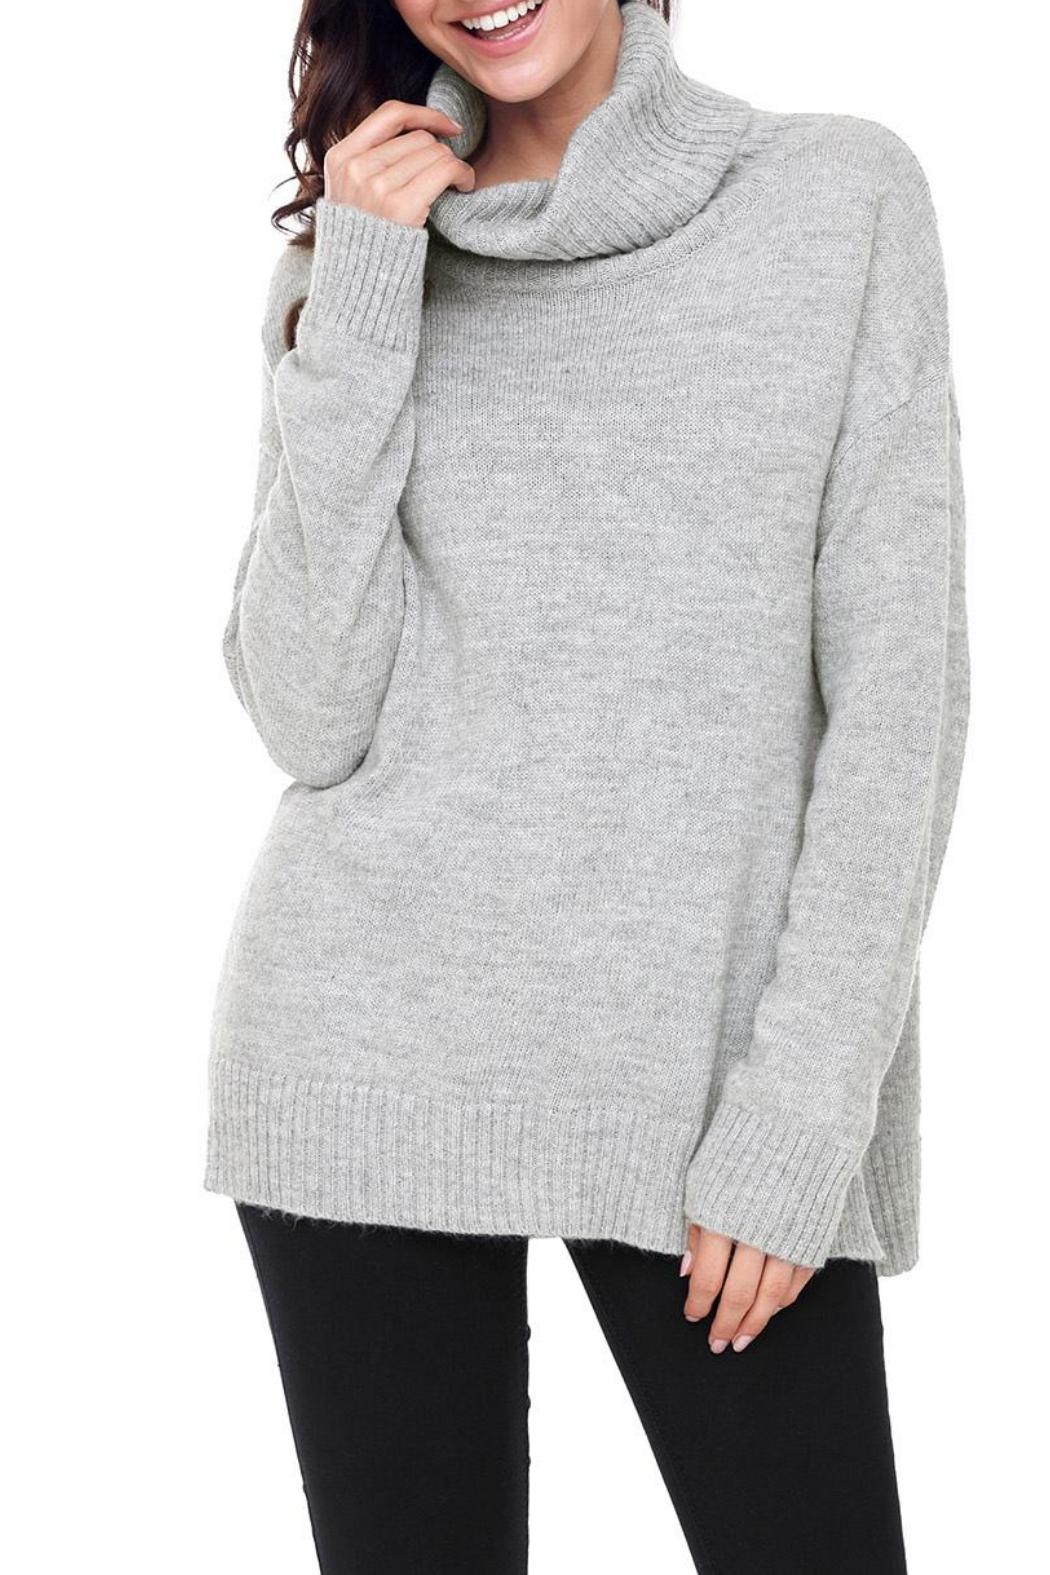 Unbranded Gray Turtleneck Sweater - Front Full Image